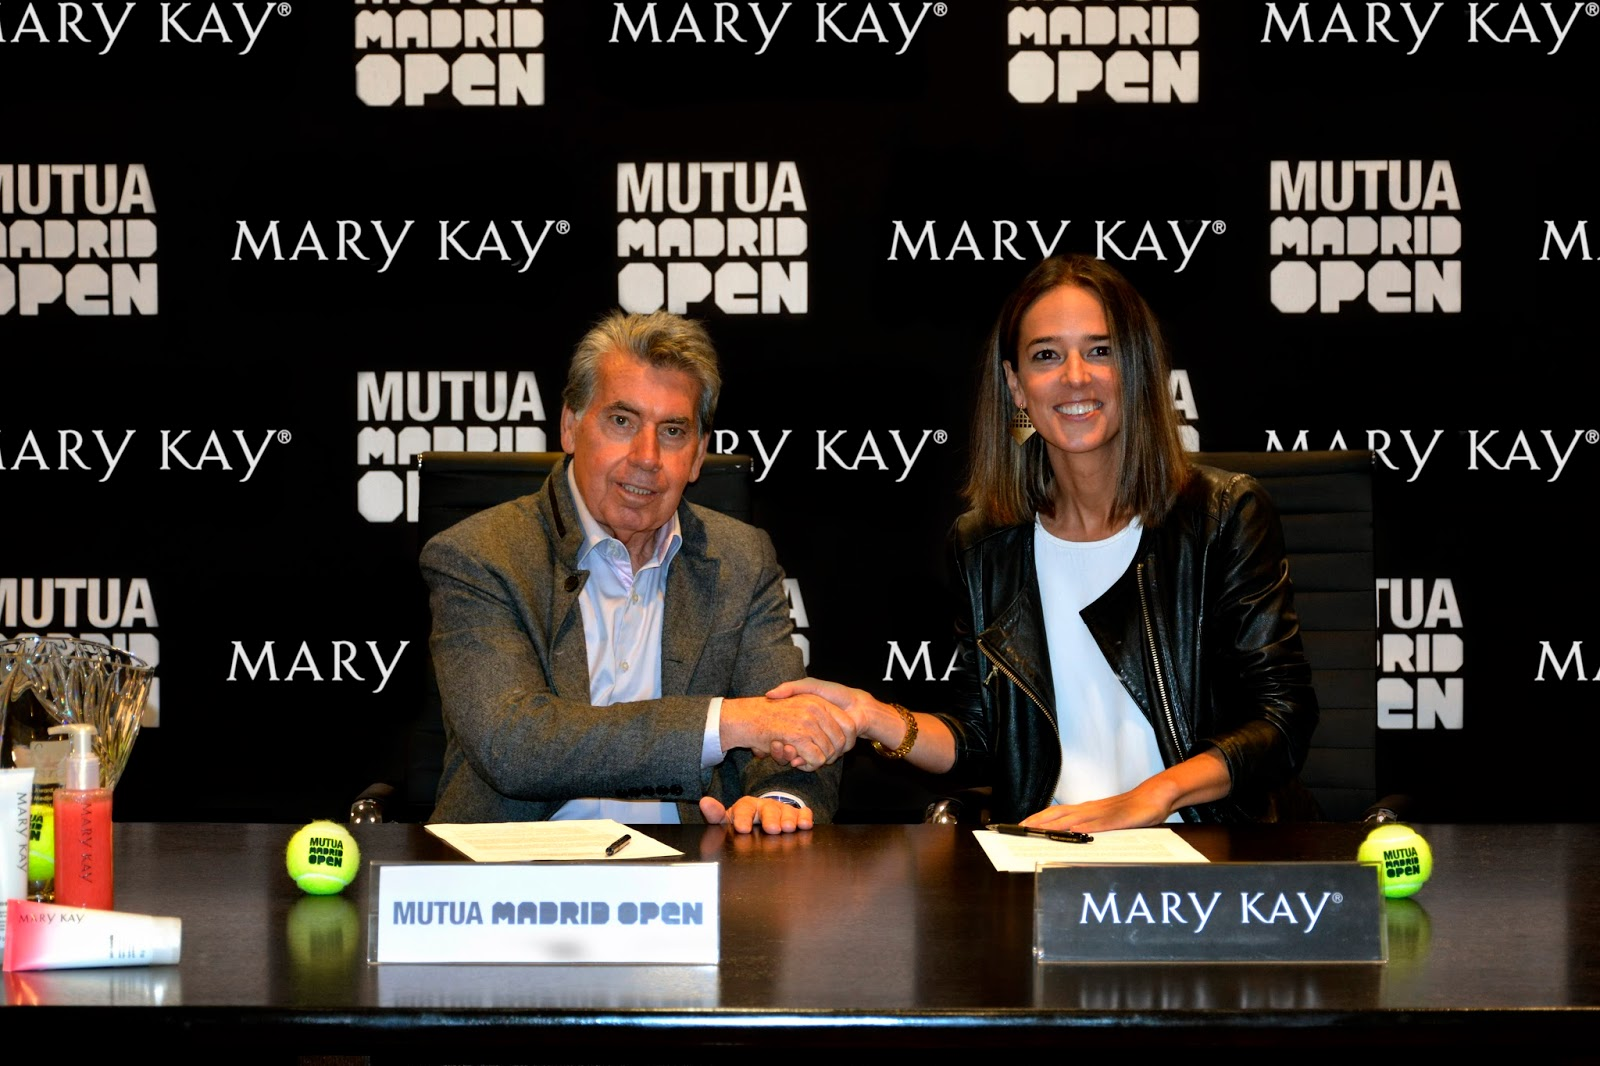 Mary Kay maquillador oficial de mutua open Madrid